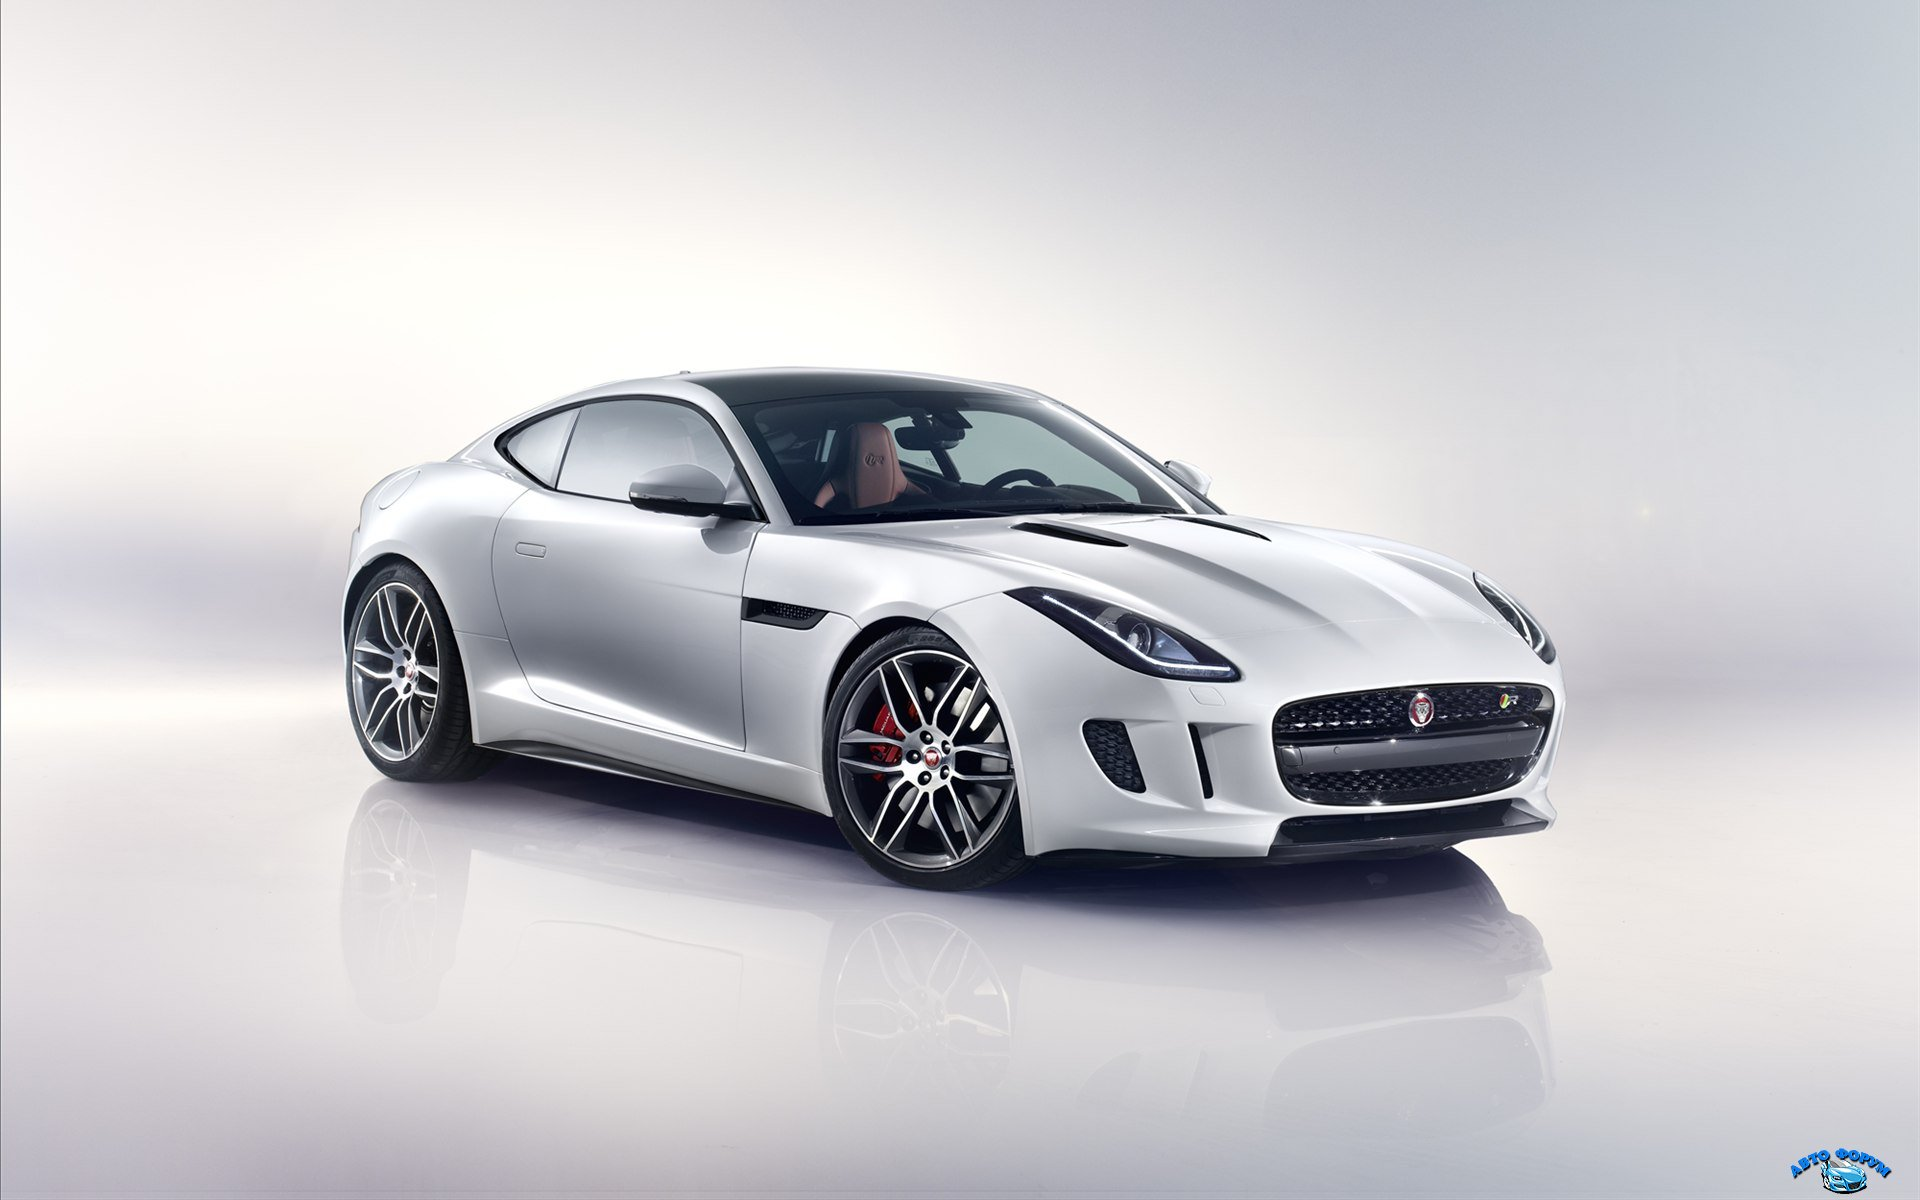 Jaguar-F-Type-R-Coupe-2015-widescreen-09.jpg